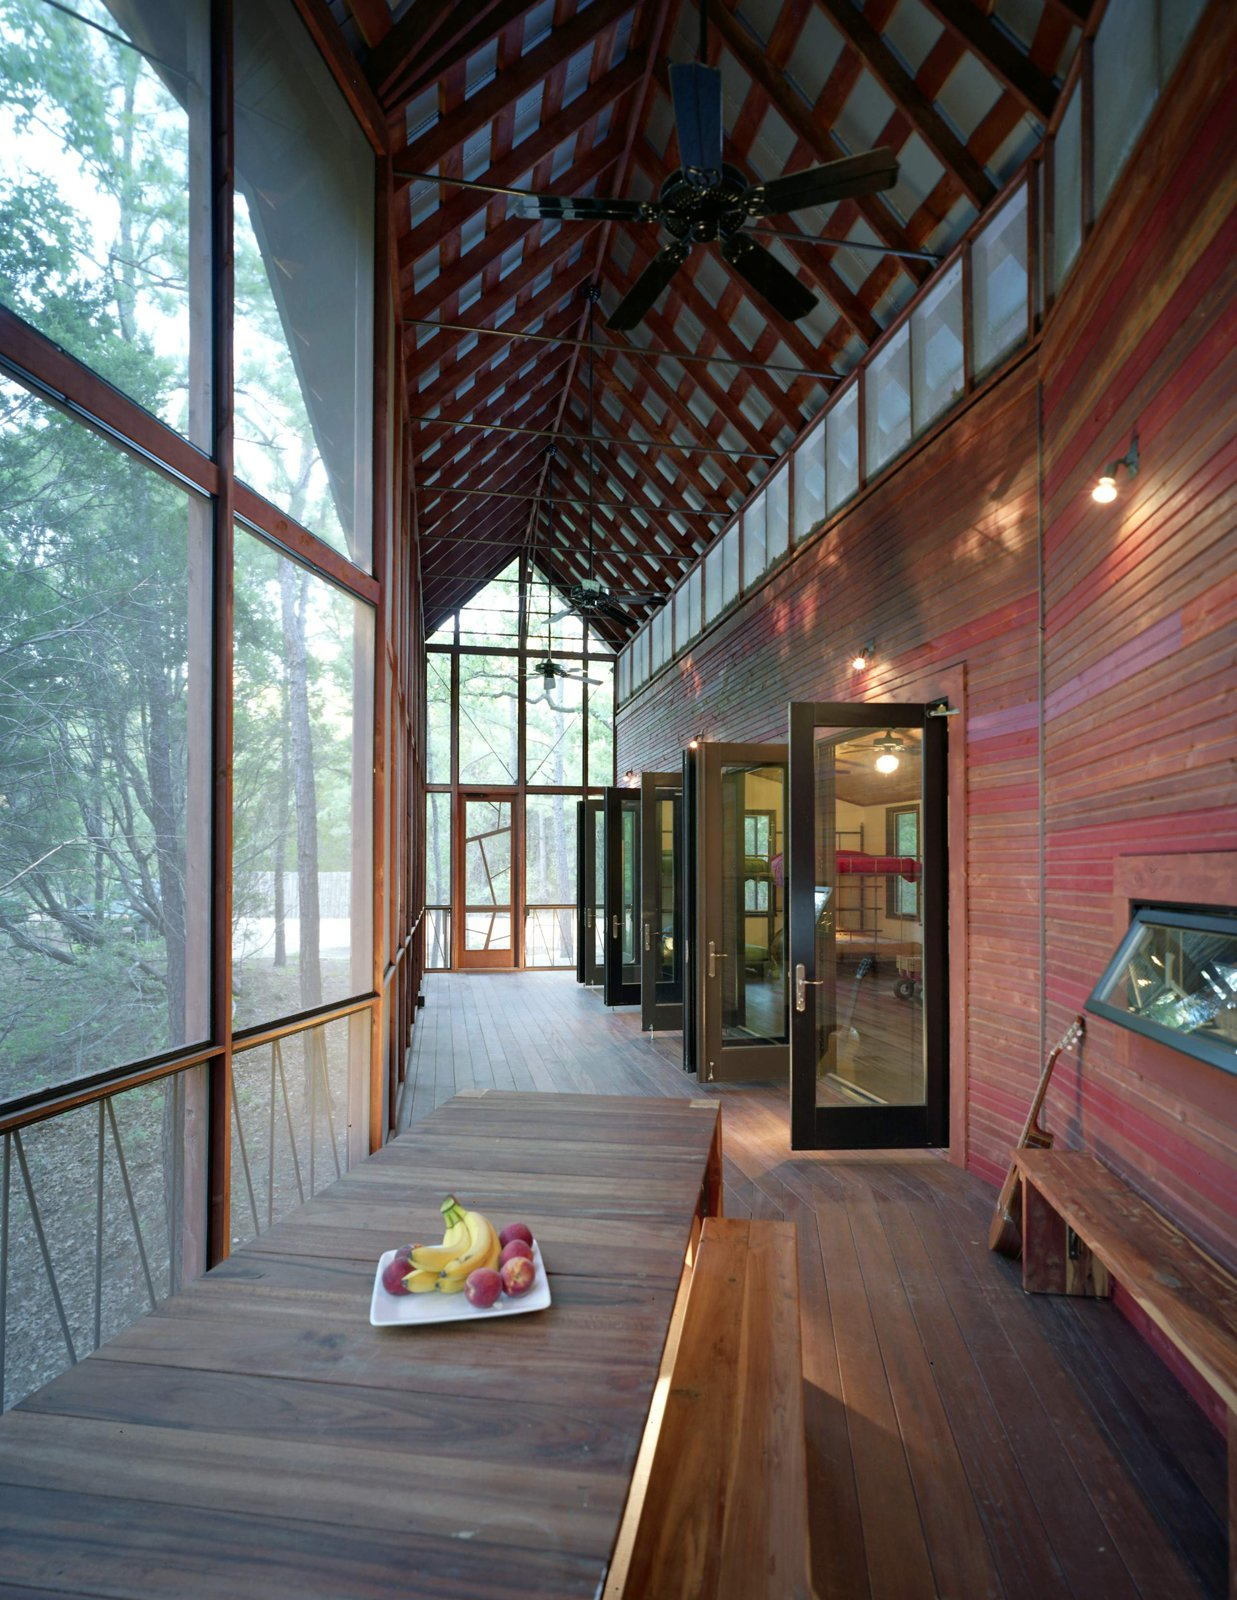 """A view back toward the entrance. The purlin ceiling beneath the porch's gabled Galvalum roof is made up of two-by-four cedar strips. A frieze of screened openings runs the length of the building, allowing a cross-breeze and extra light in, while ceiling fans keep the air circulating in summer. """"Animals, from deer to raccoons to all kinds of birds, come right up to the porch,"""" says Panton.  Texas Bunkhouse by Erika Heet"""